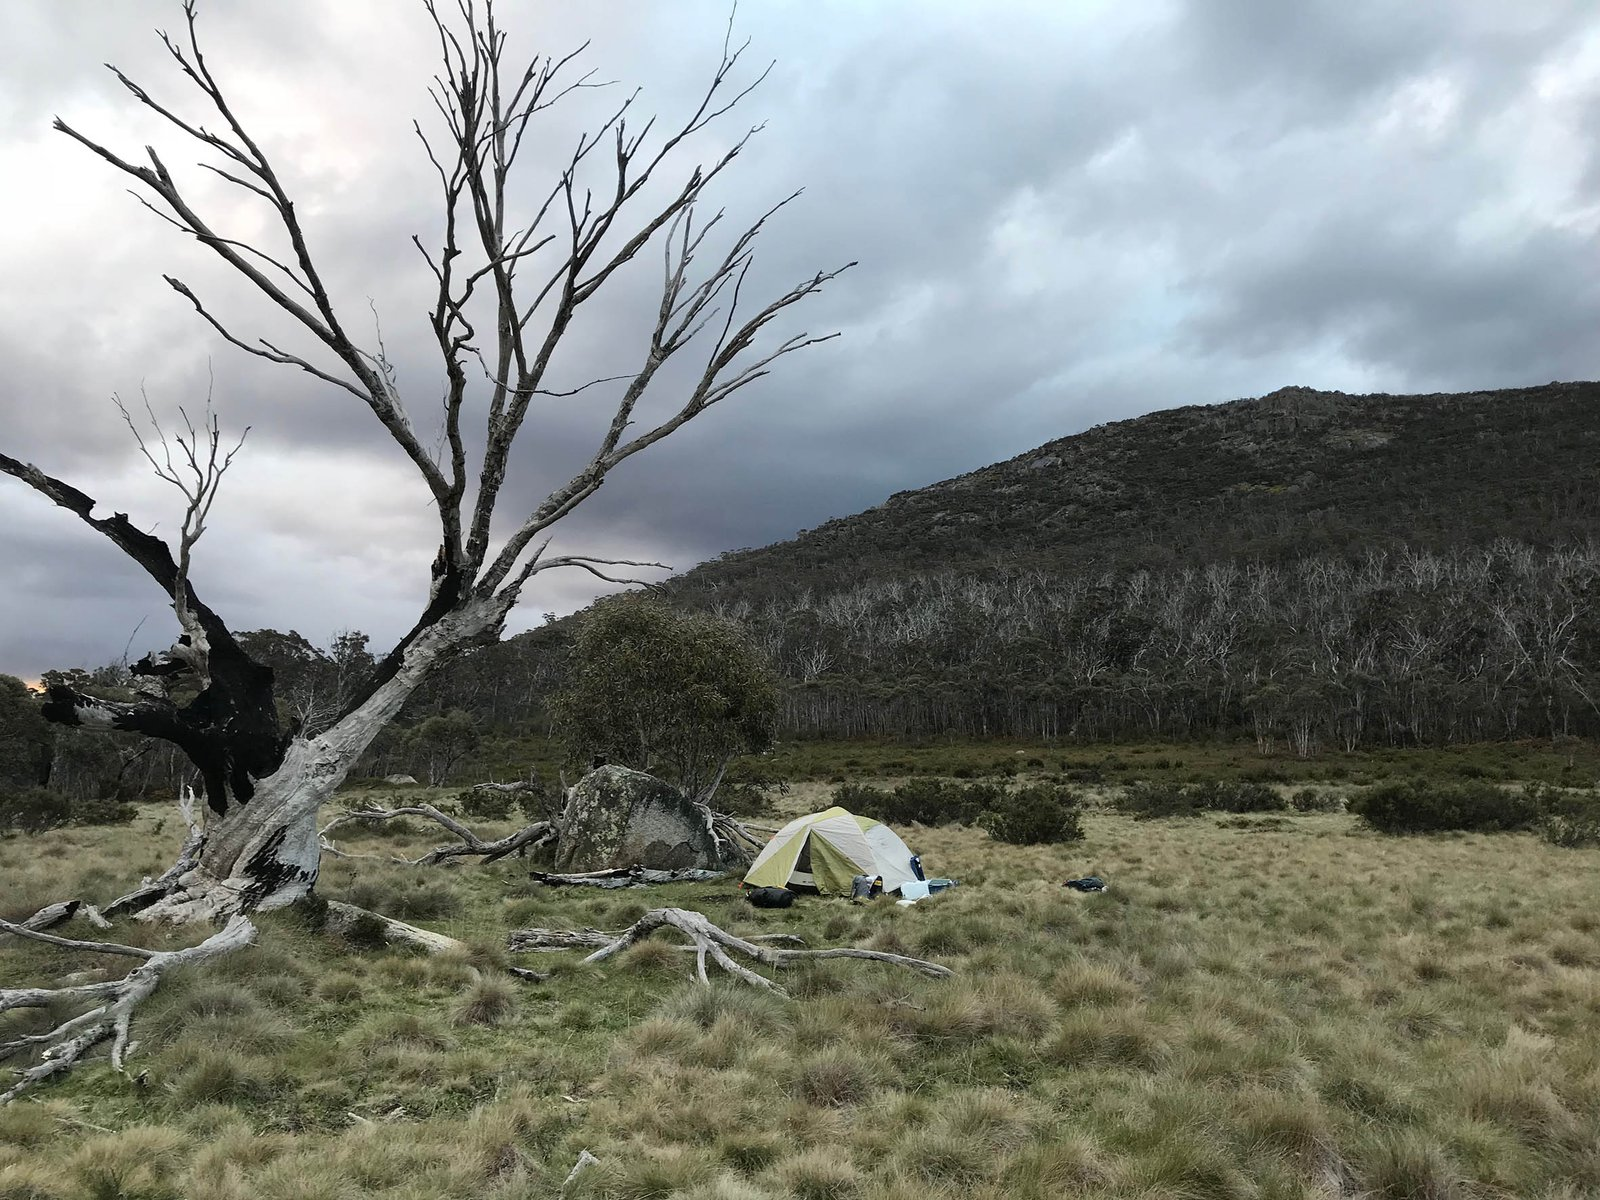 Campsite at Namadgi National Park during the ACT Bush Blitz.